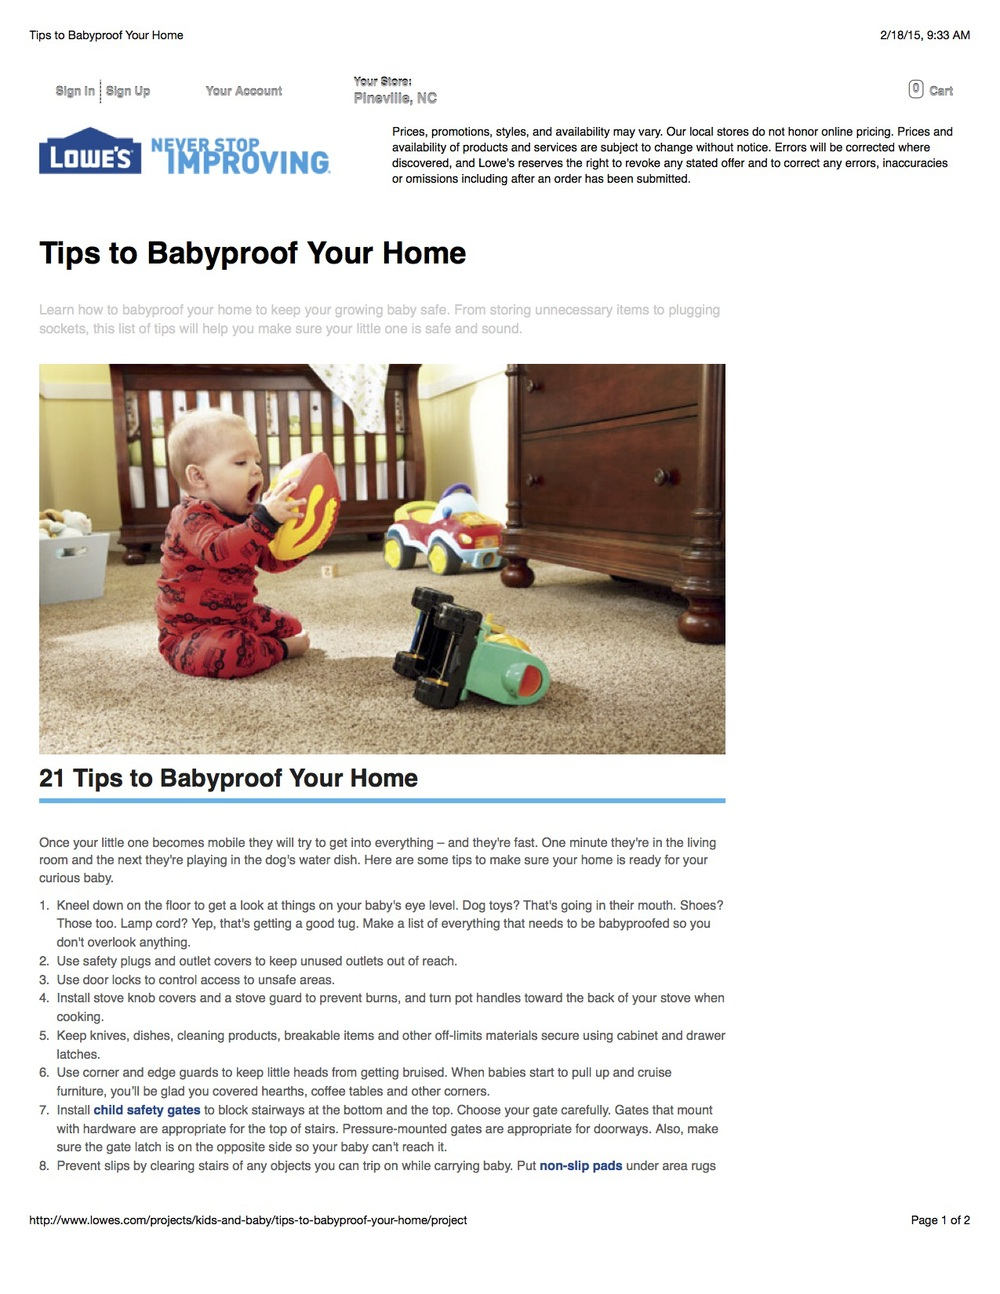 Tips to Babyproof Your Home_1.jpg